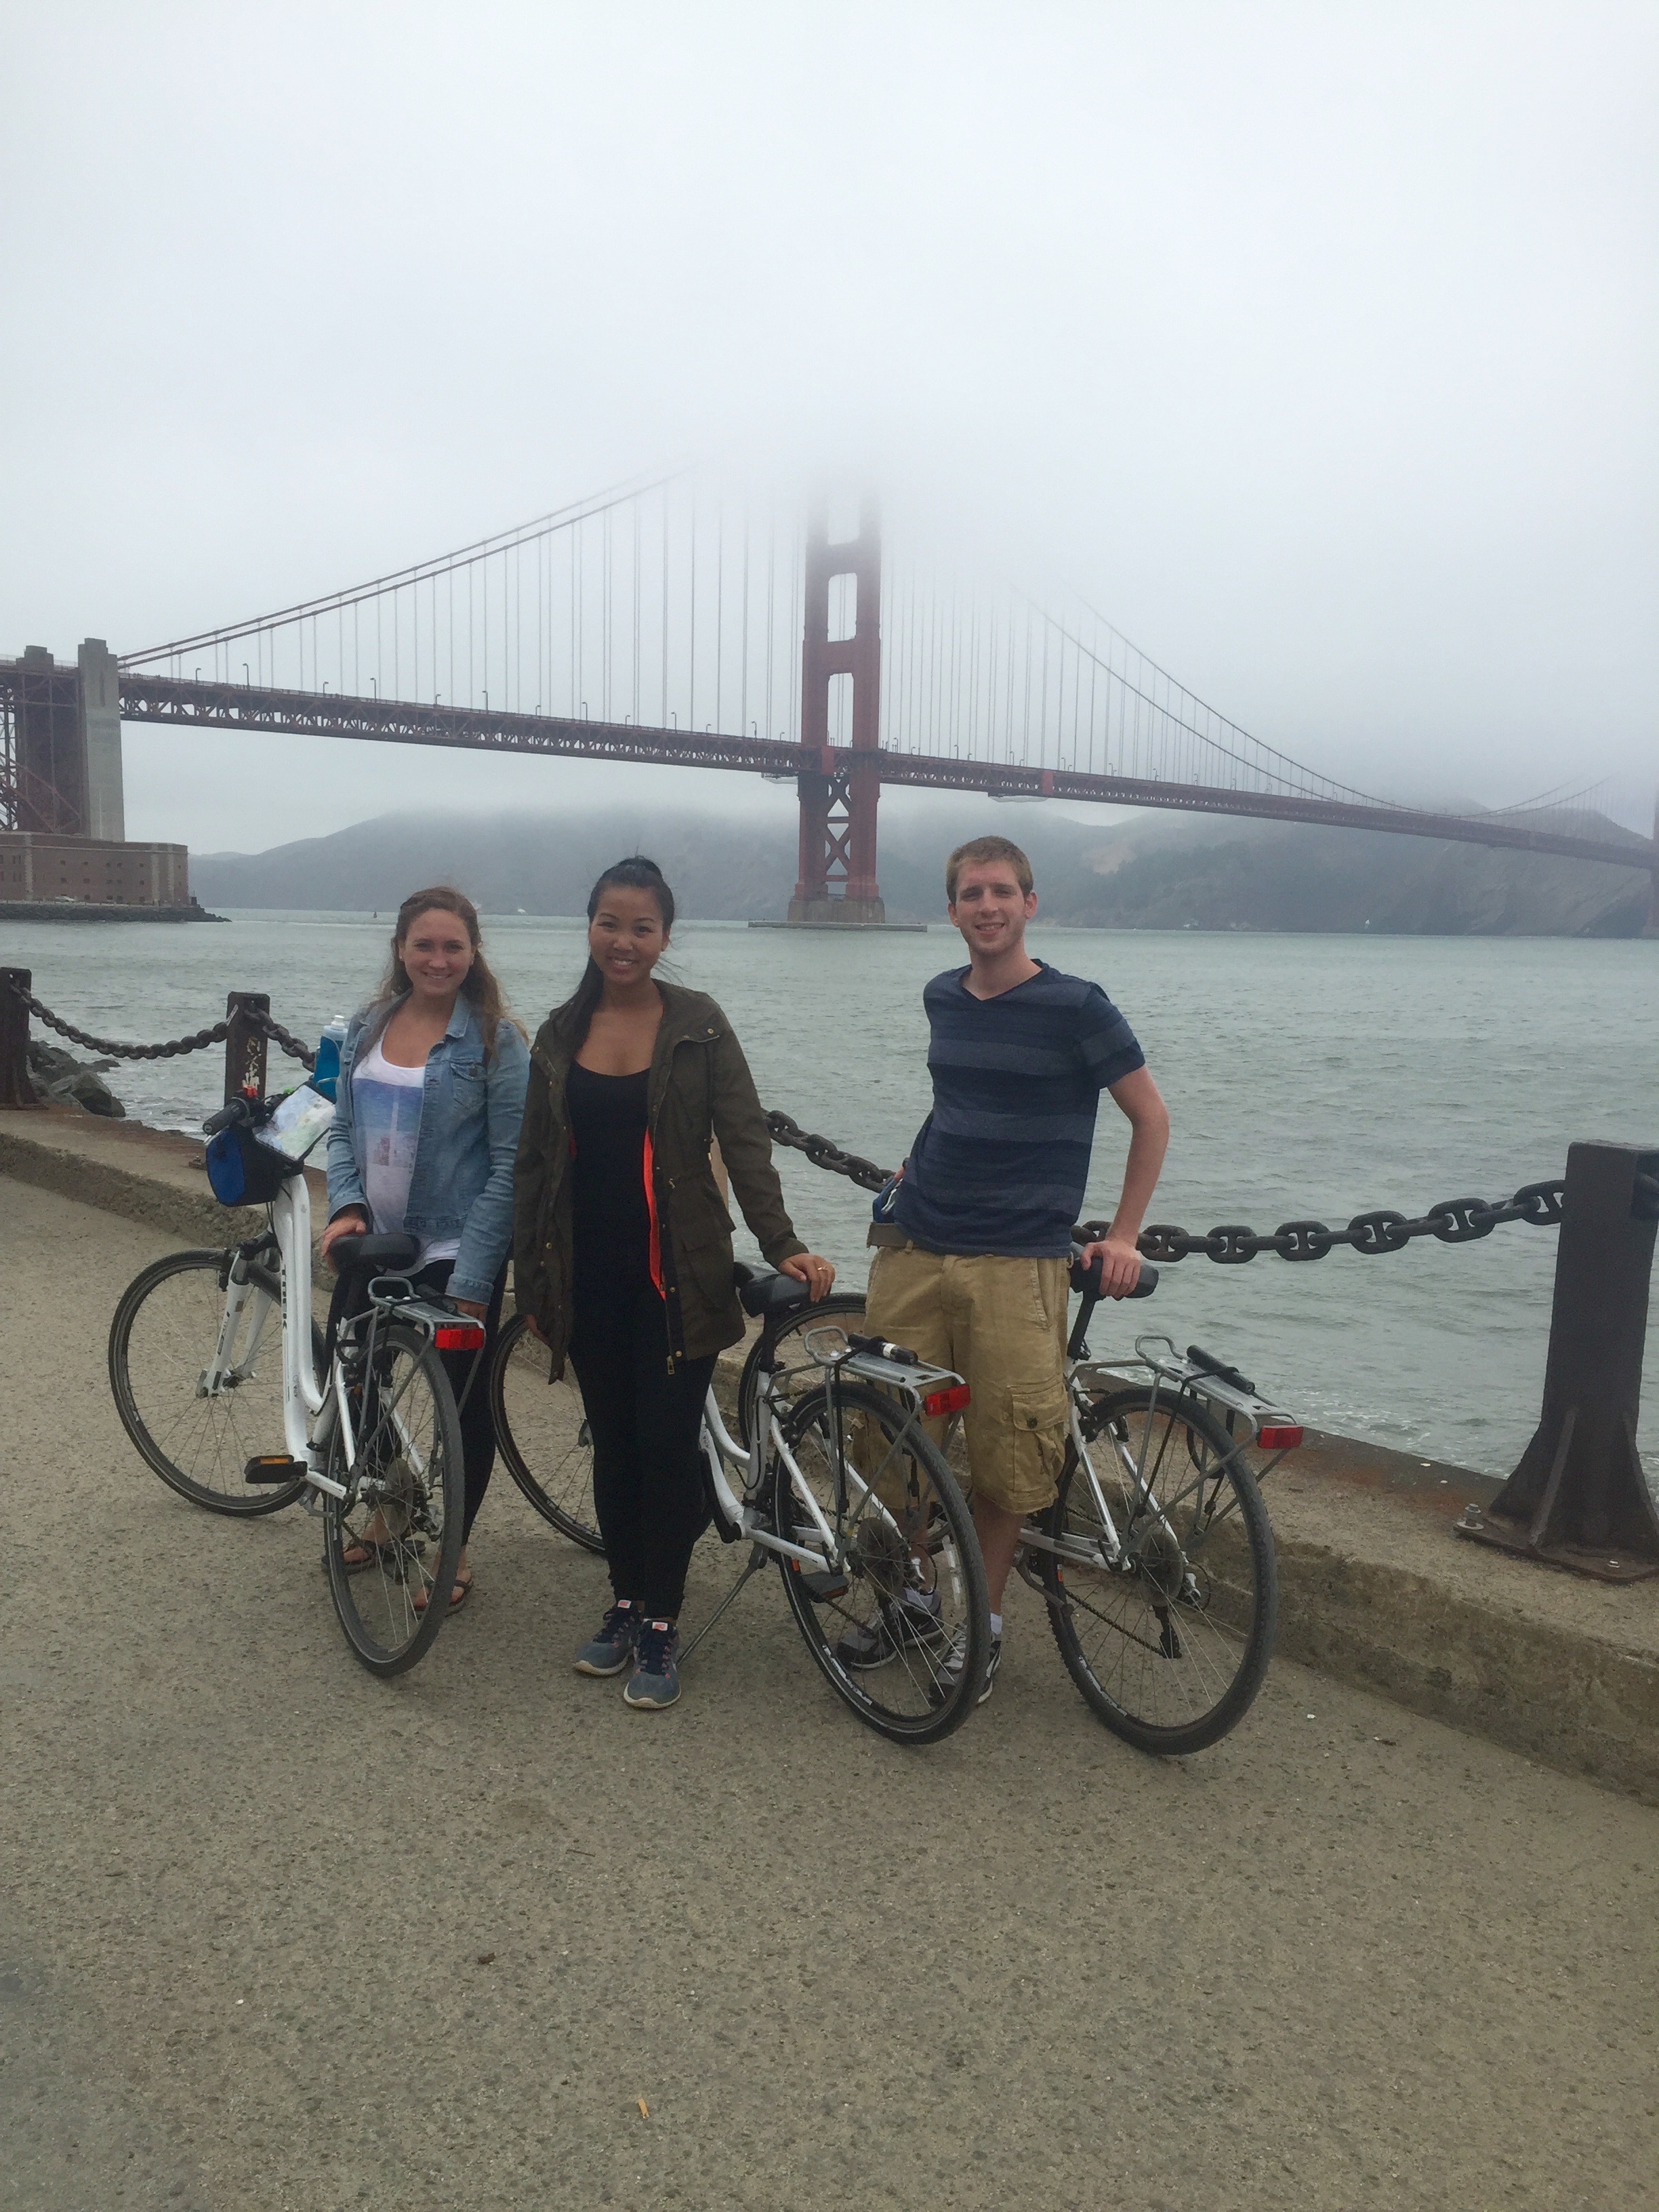 Michelle and friends at San Francisco's  Golden Gate Bridge .